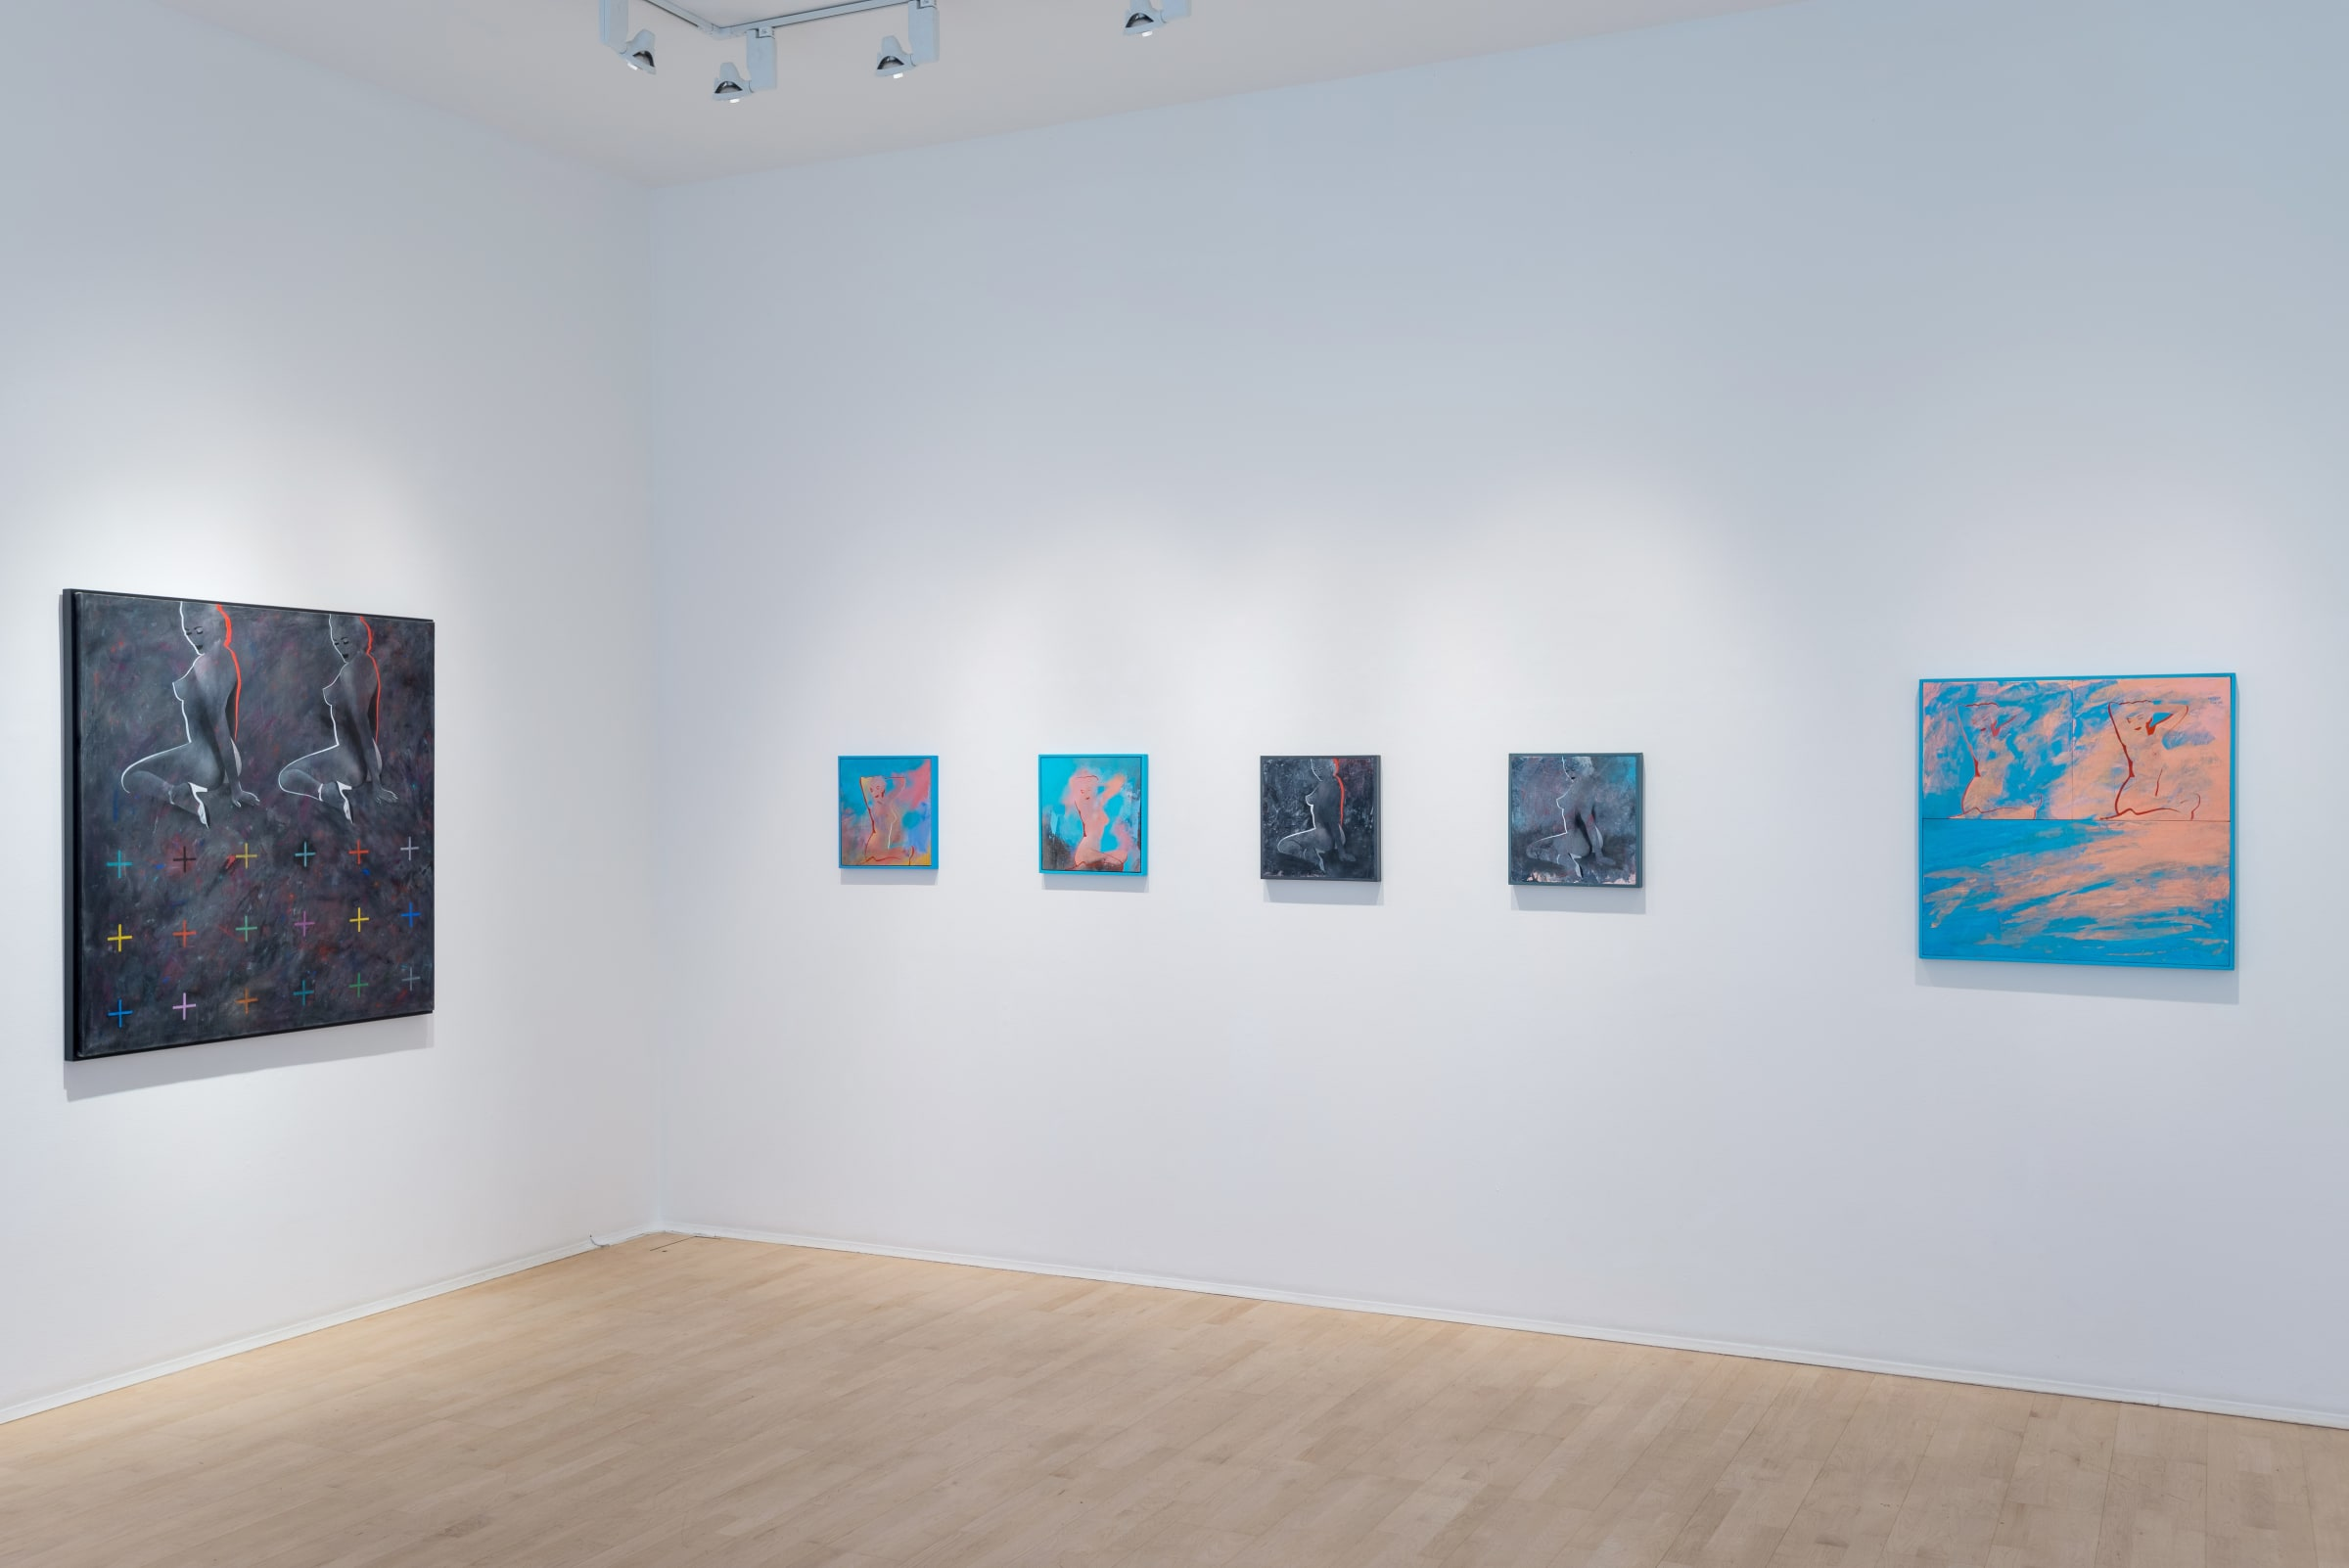 """<span class=""""link fancybox-details-link""""><a href=""""/exhibitions/318/works/image_standalone1627/"""">View Detail Page</a></span><p><strong>ANTONY DONALDSON</strong>   OF MEMORY OF OBLIVION   09 SEP - 09 OCT 2015   Installation view</p>"""